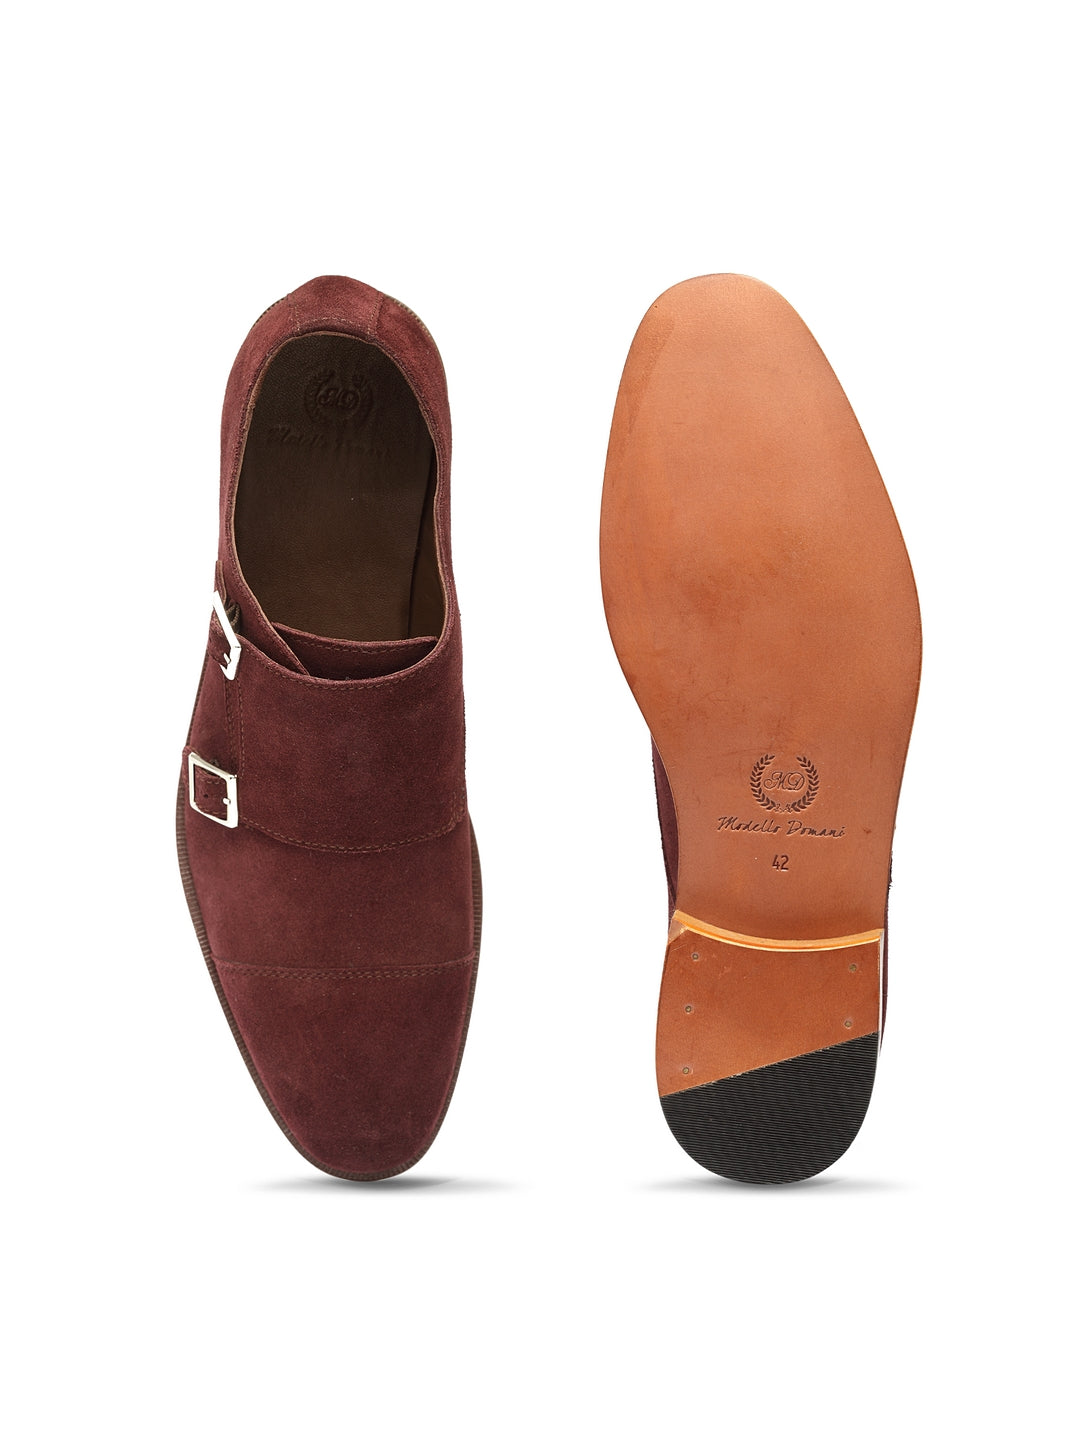 Spanish Cut Suede Dual Monkstraps